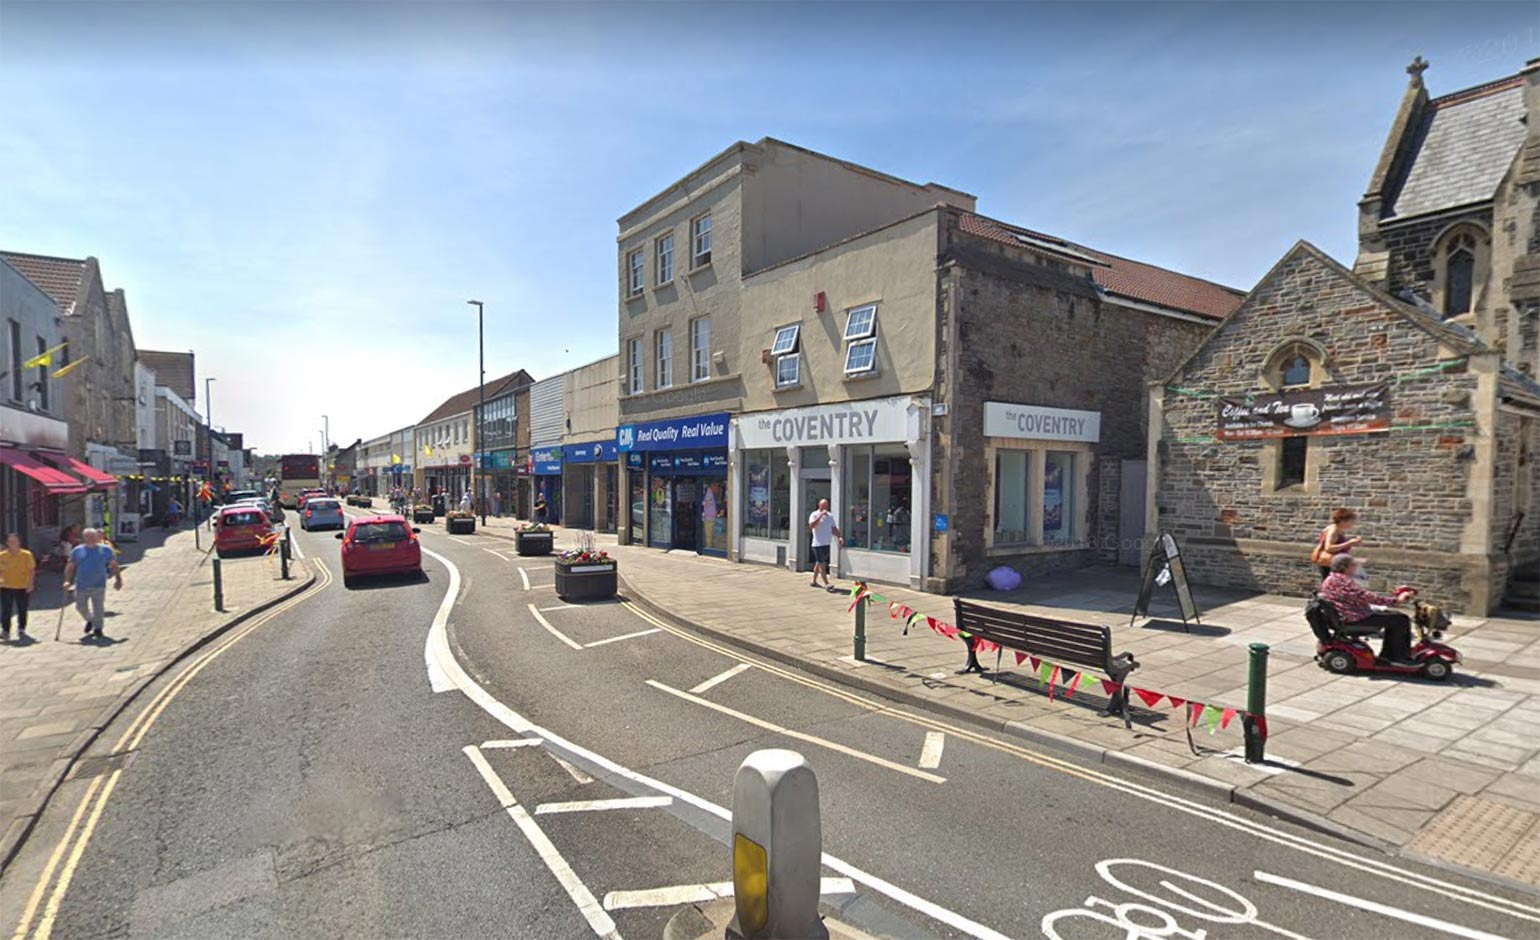 Views sought on potential changes to rejuvenate Keynsham town centre